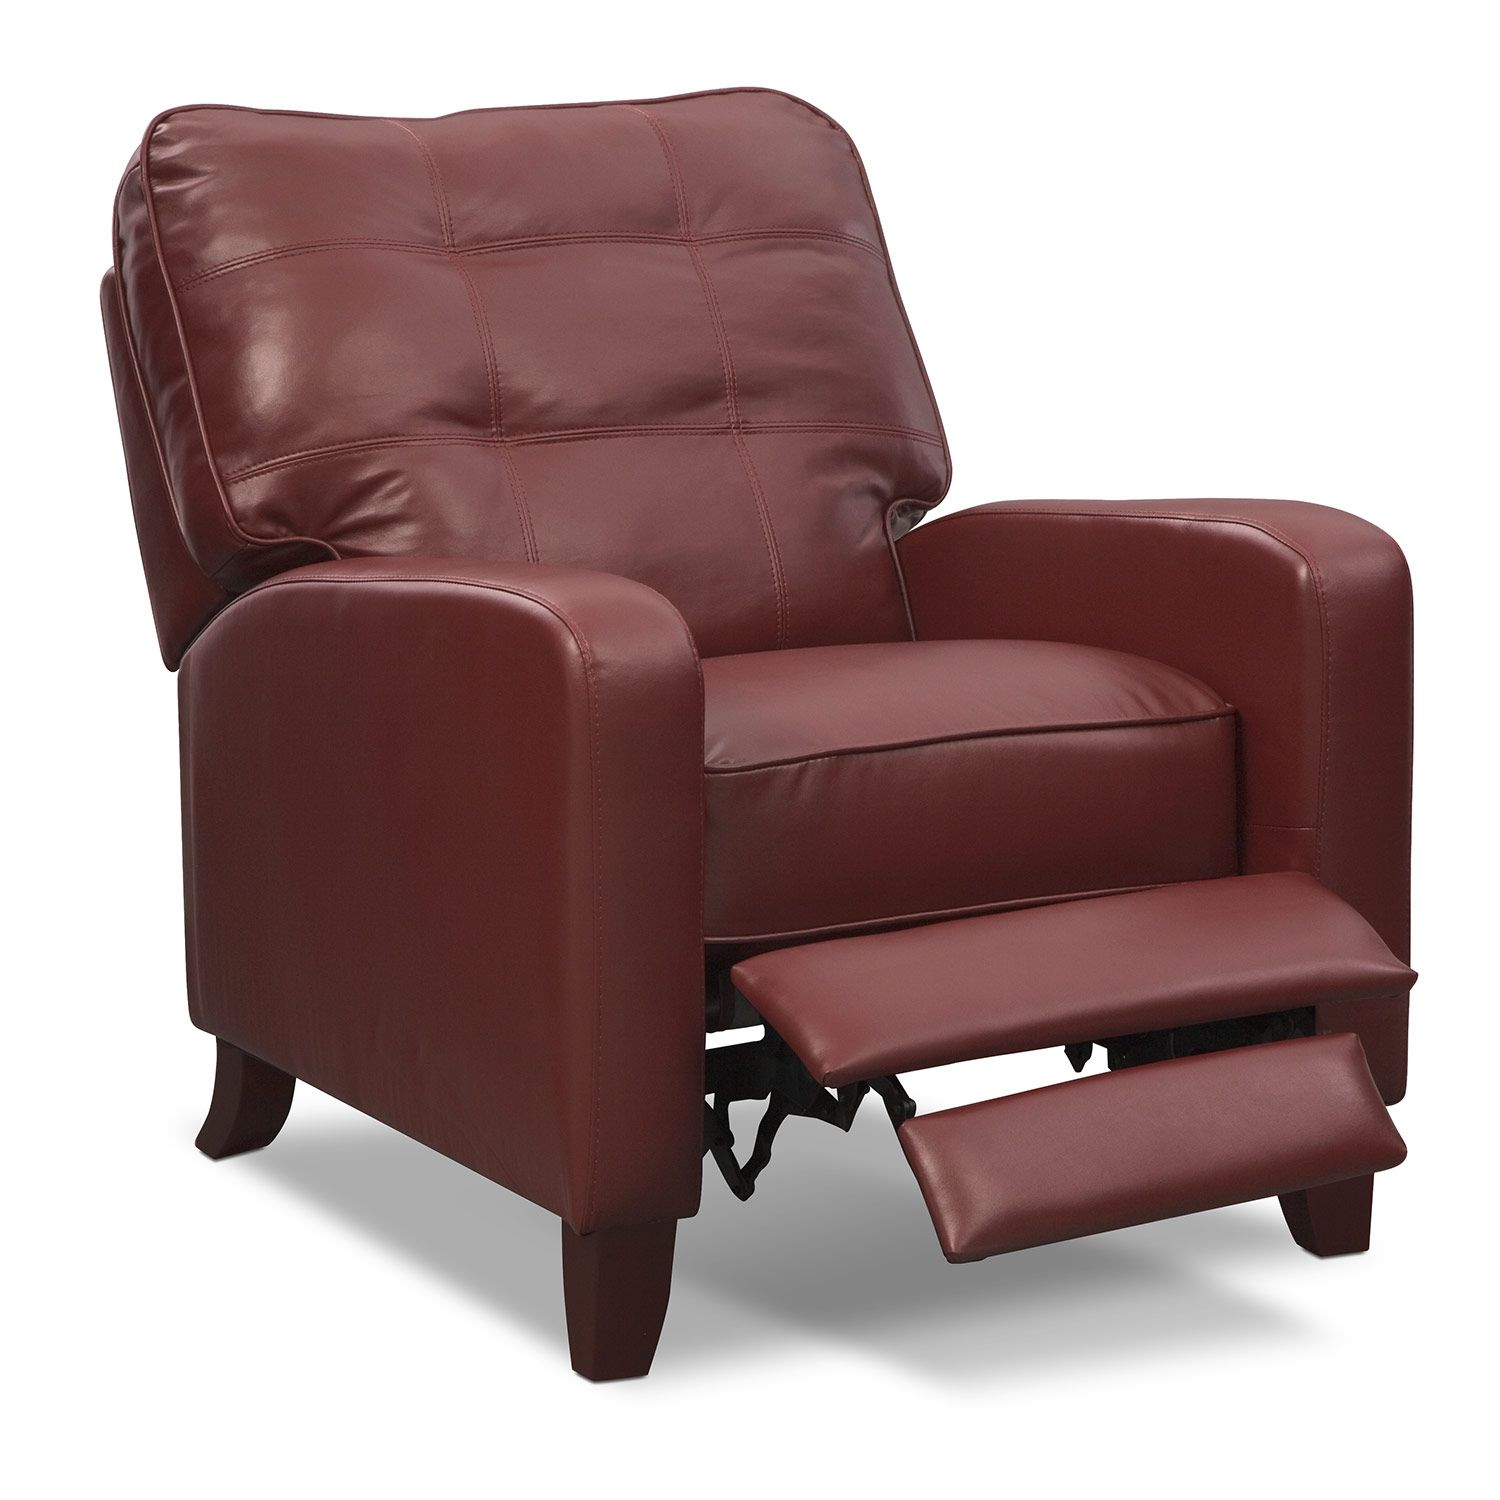 Clinton Pushback Recliner Value City Furniture 249 Value City   Value City  Furniture Store